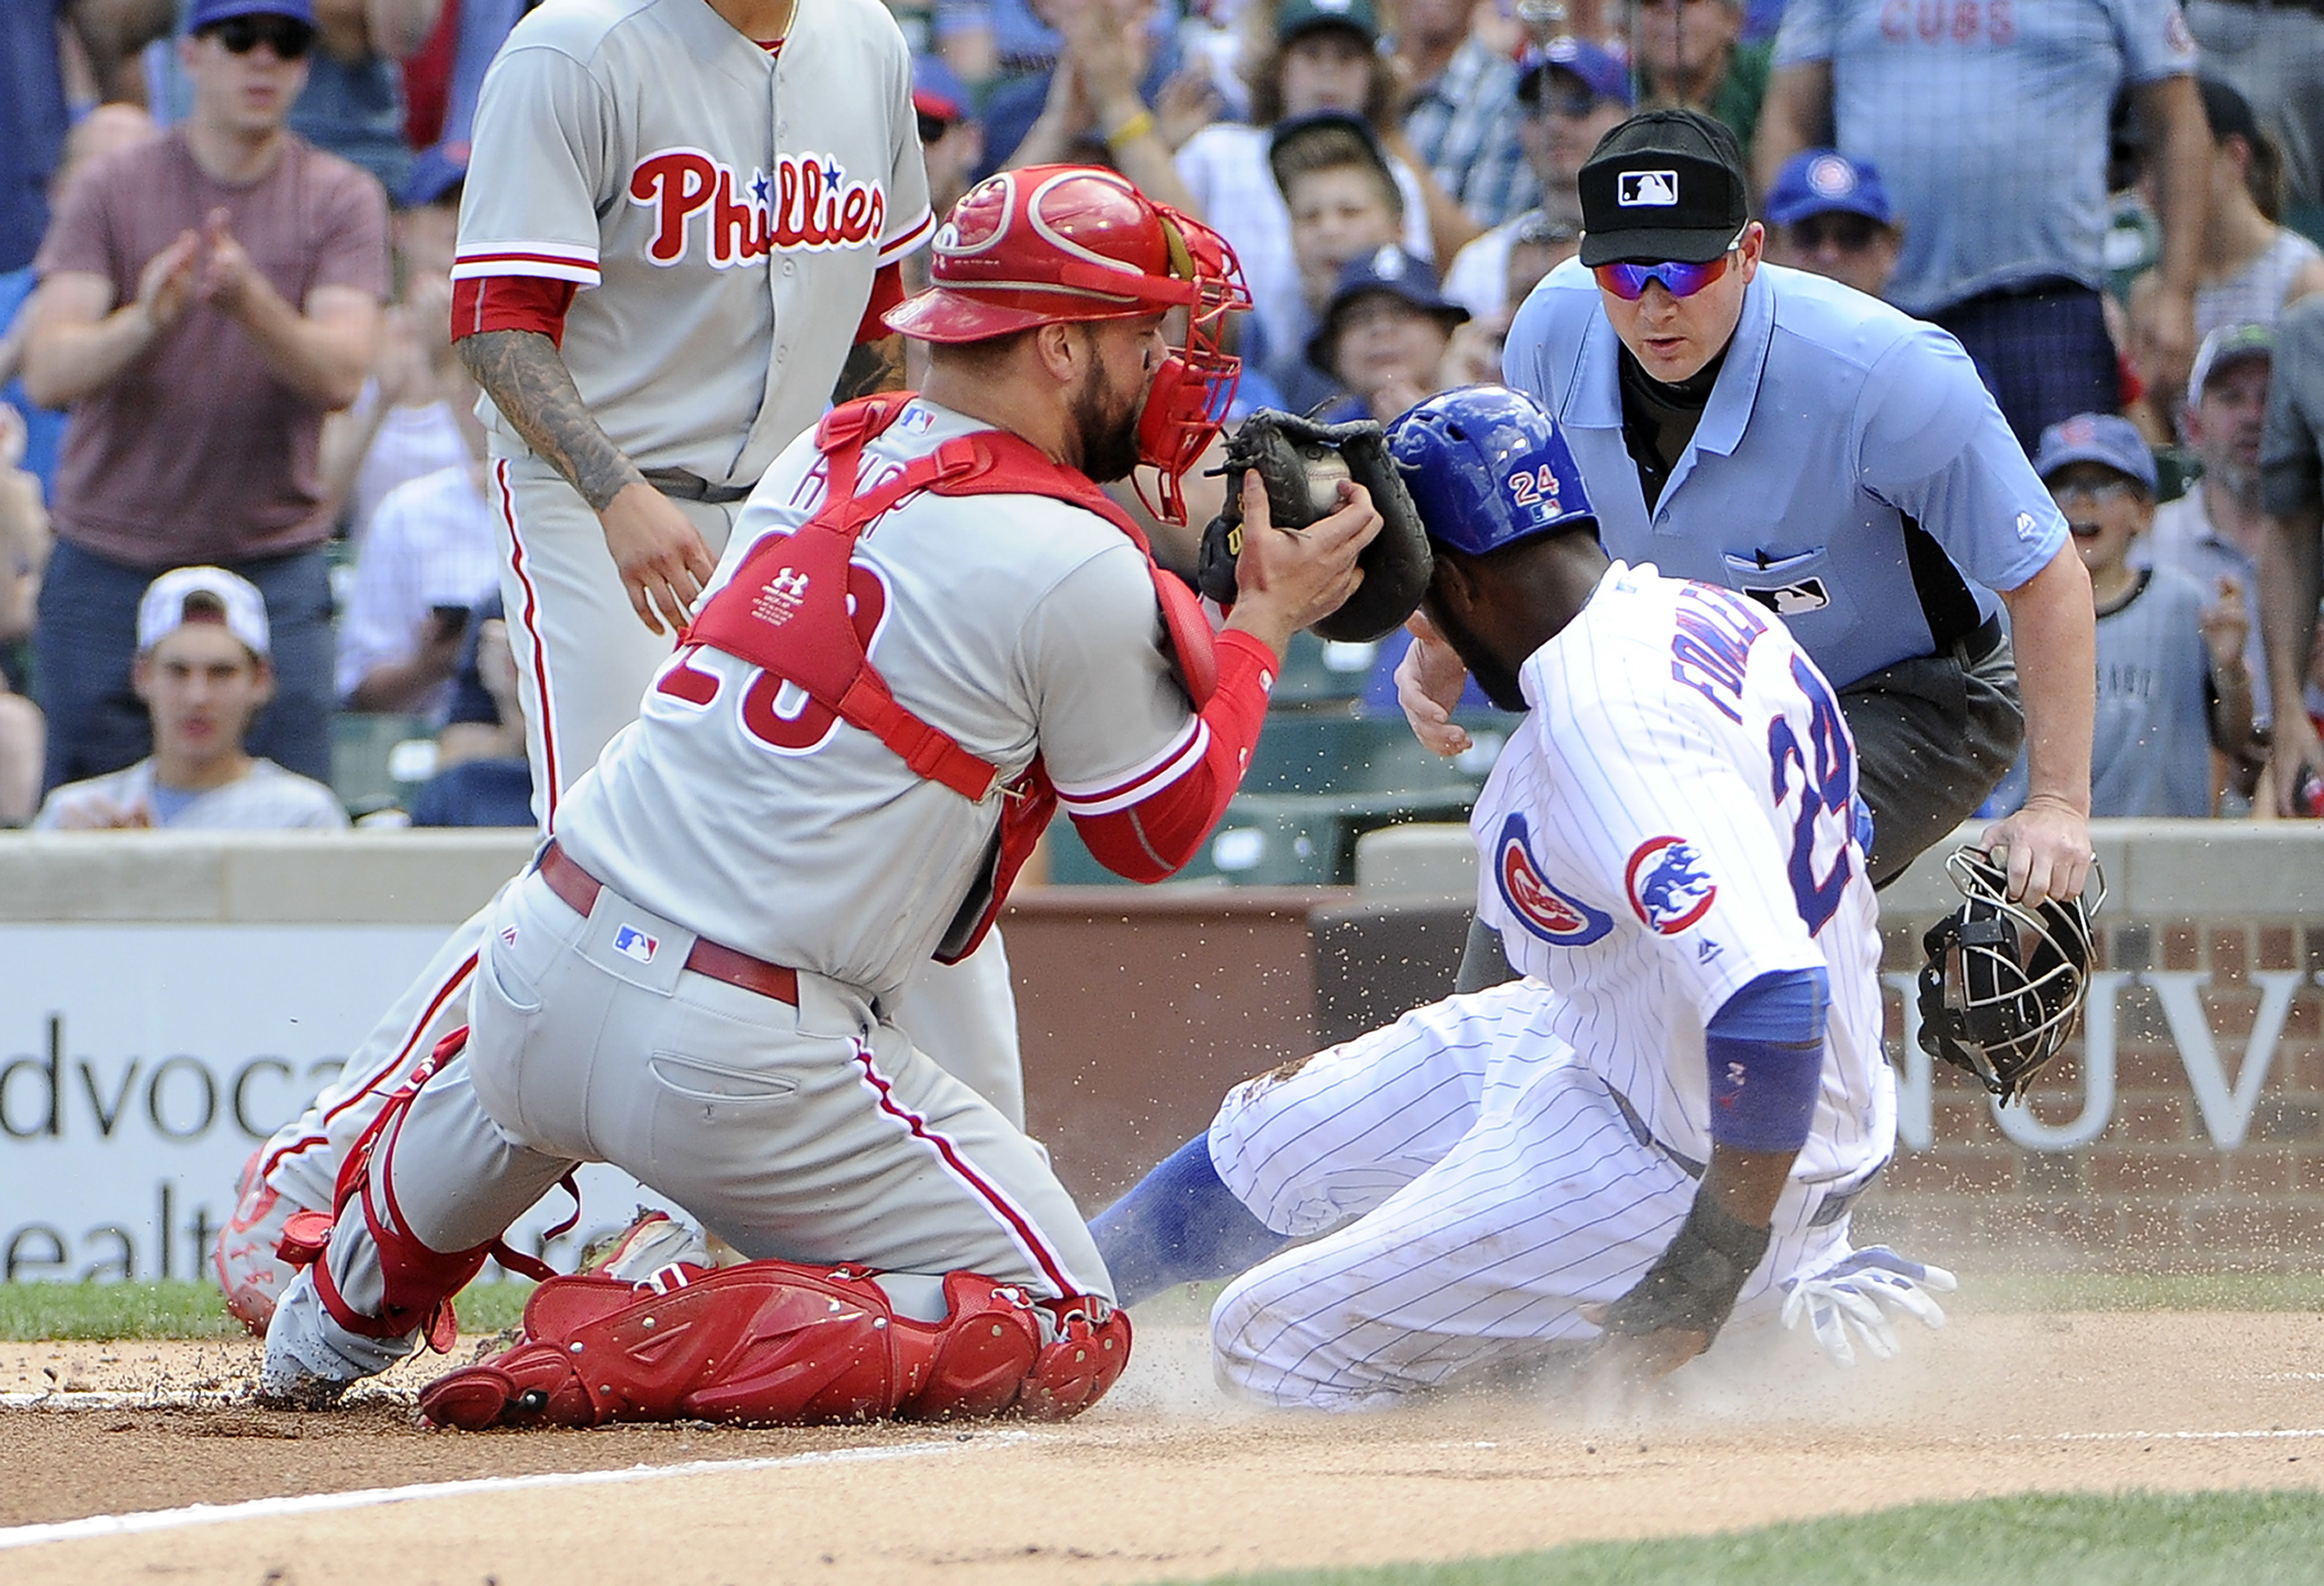 Chicago Cubs' Dexter Fowler (24) is safe at home as Philadelphia Phillies catcher Cameron Rupp (29) makes a late tag during the first inning of a baseball game, Sunday, May 29, 2016, in Chicago. (AP Photo/David Banks)